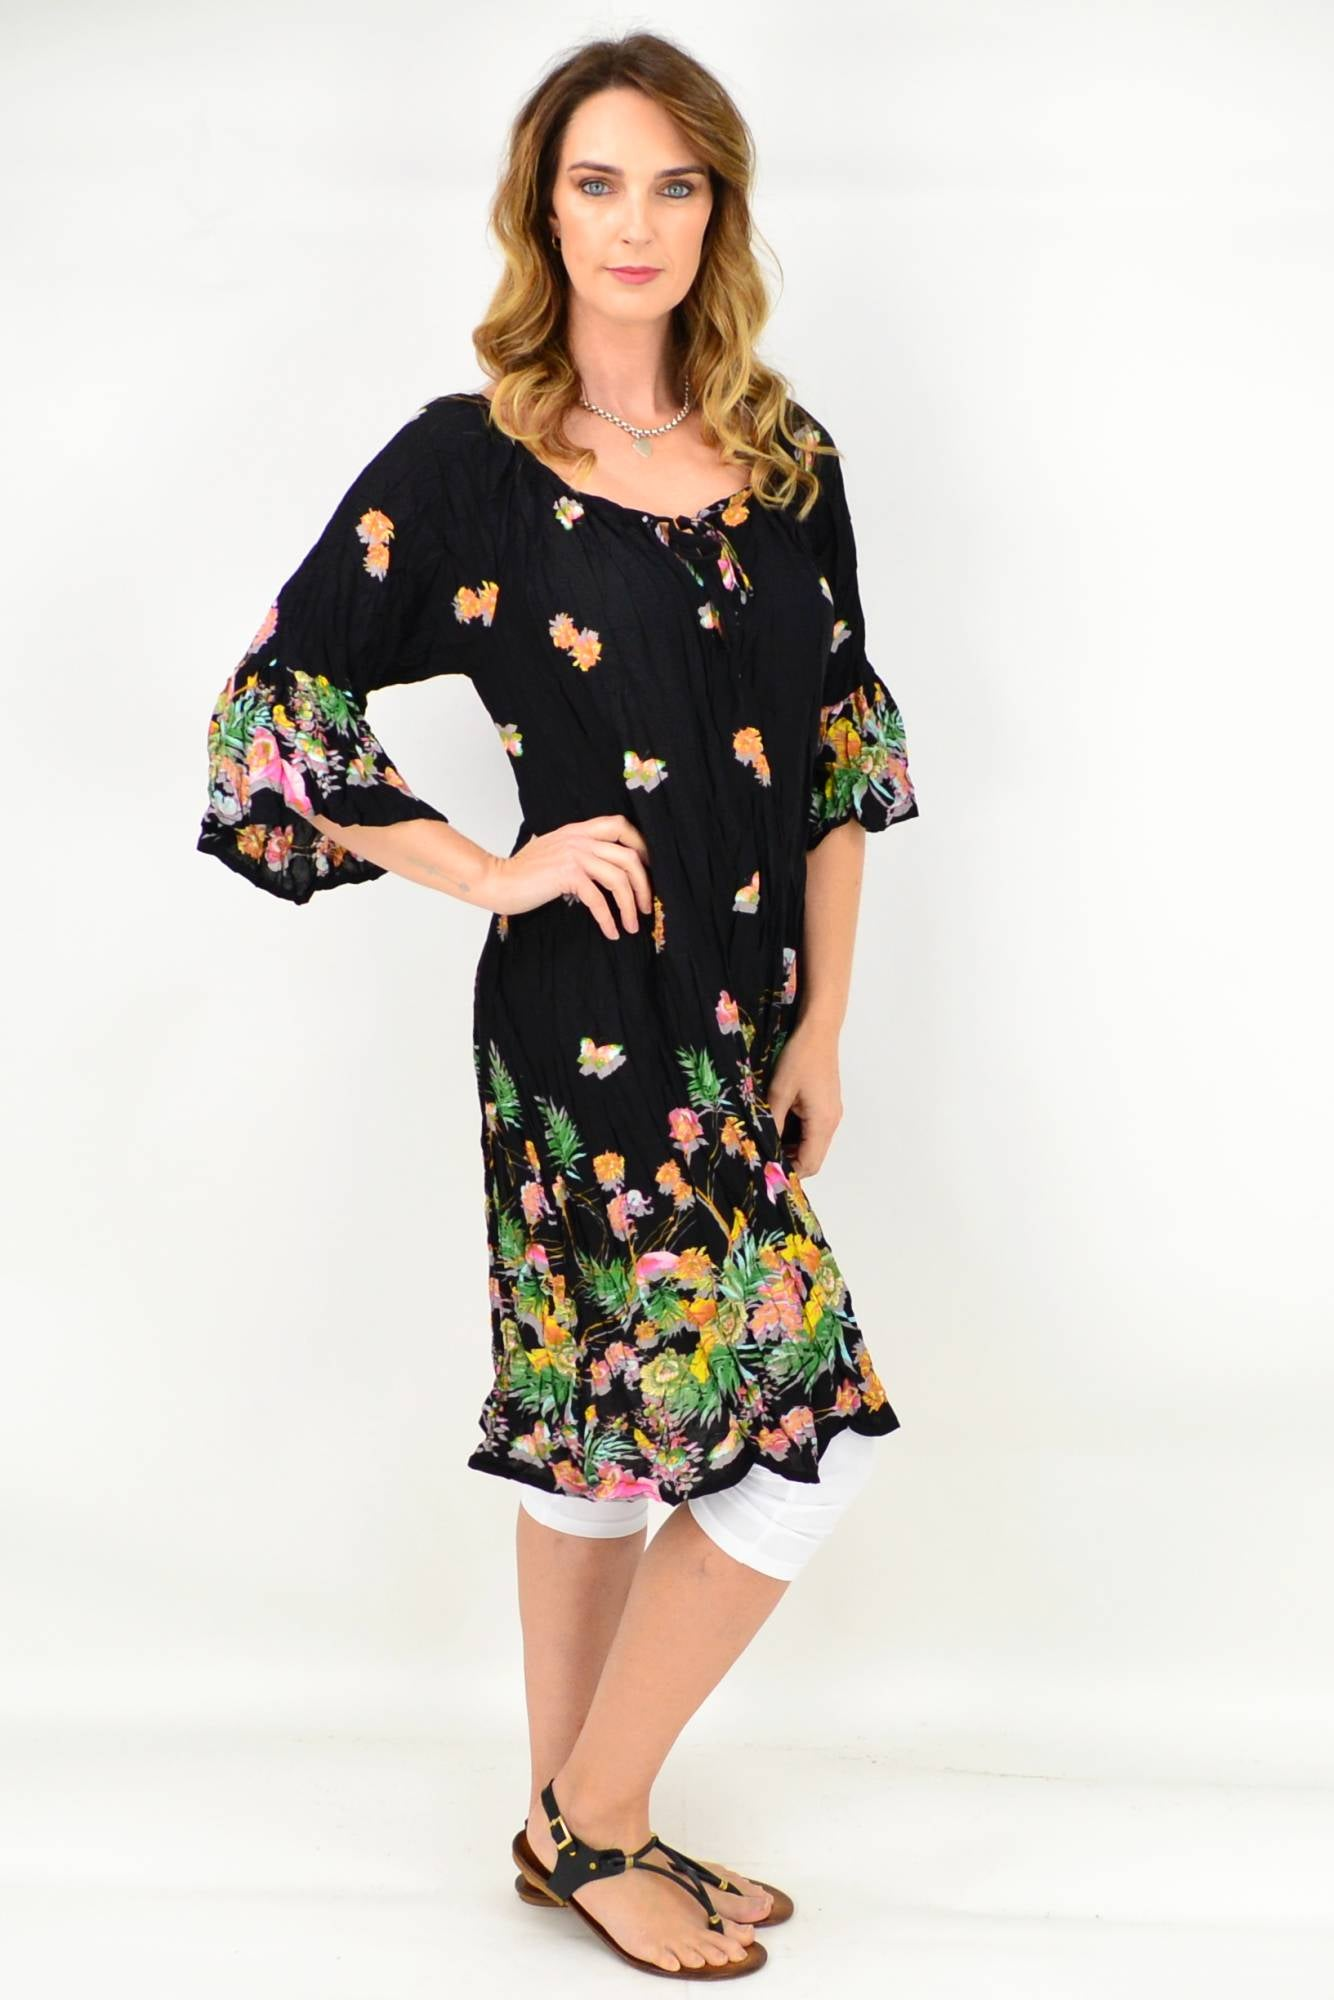 Black Butterfly Flower Crinkle Tie Tunic Dress | I Love Tunics | Tunic Tops | Tunic | Tunic Dresses  | womens clothing online